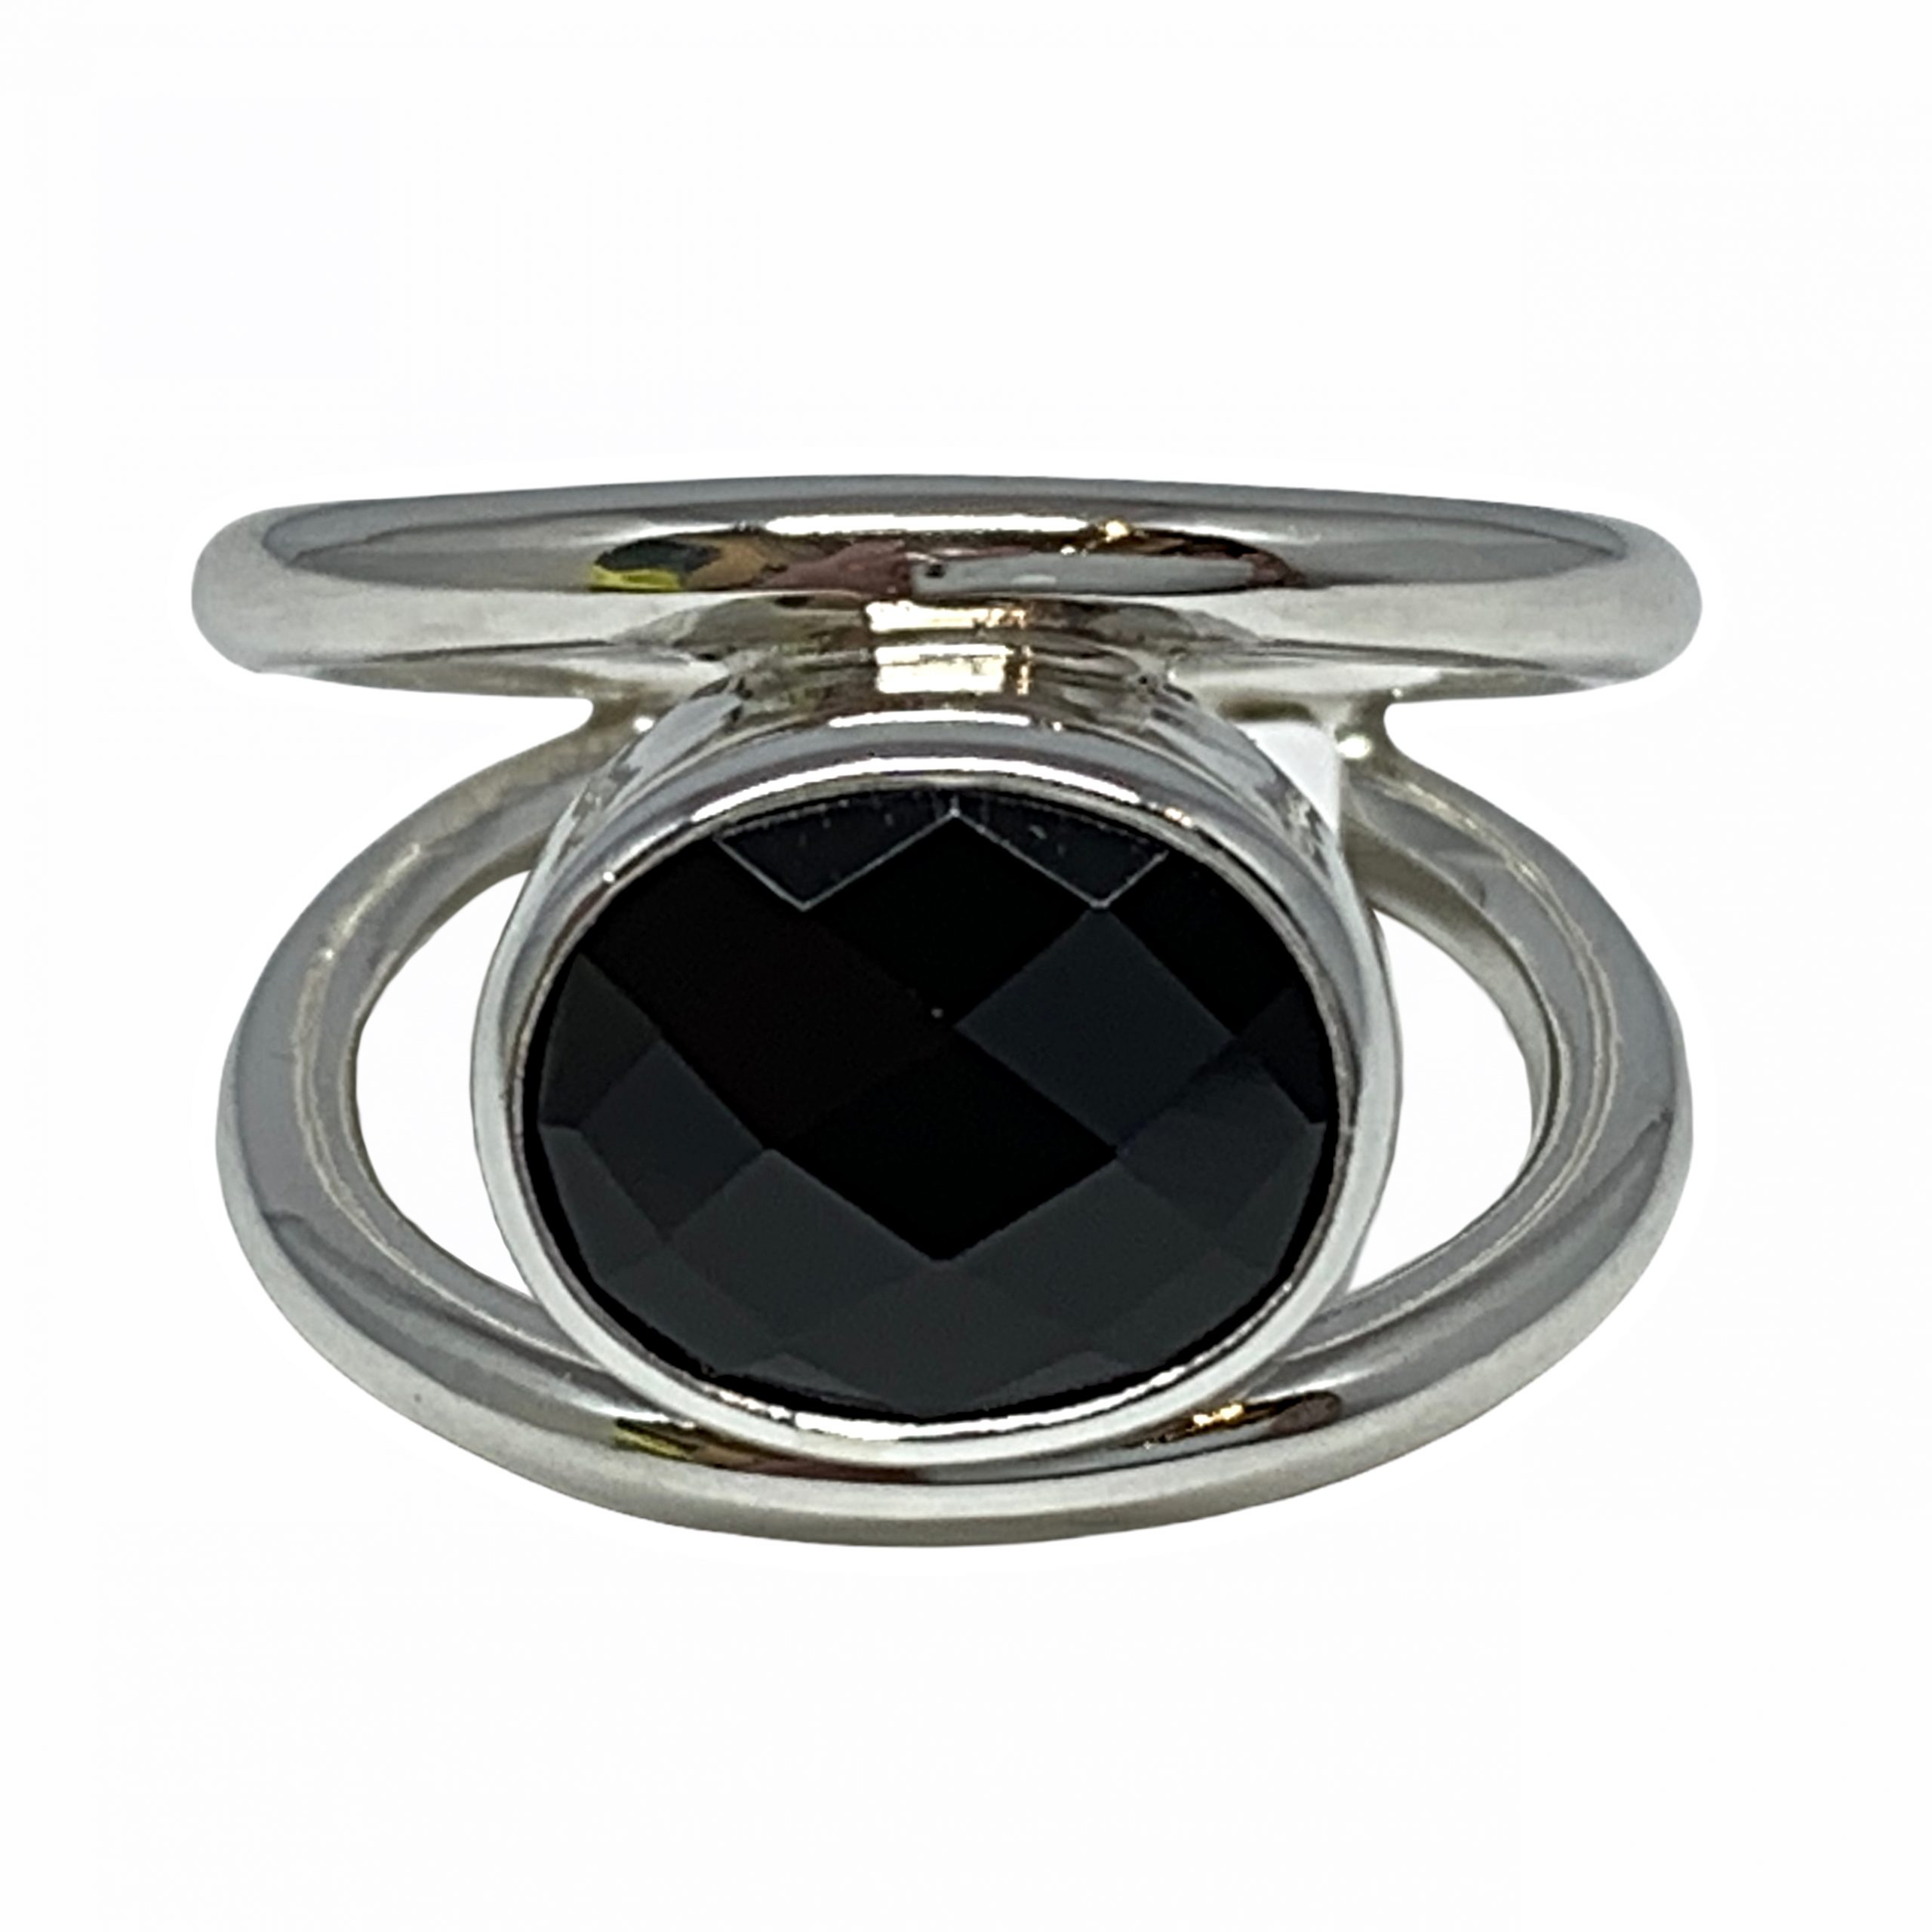 Sterling silver and spinel ring by A&R Jewellery | Effusion Art Gallery + Cast Glass Studio, Invermere BC